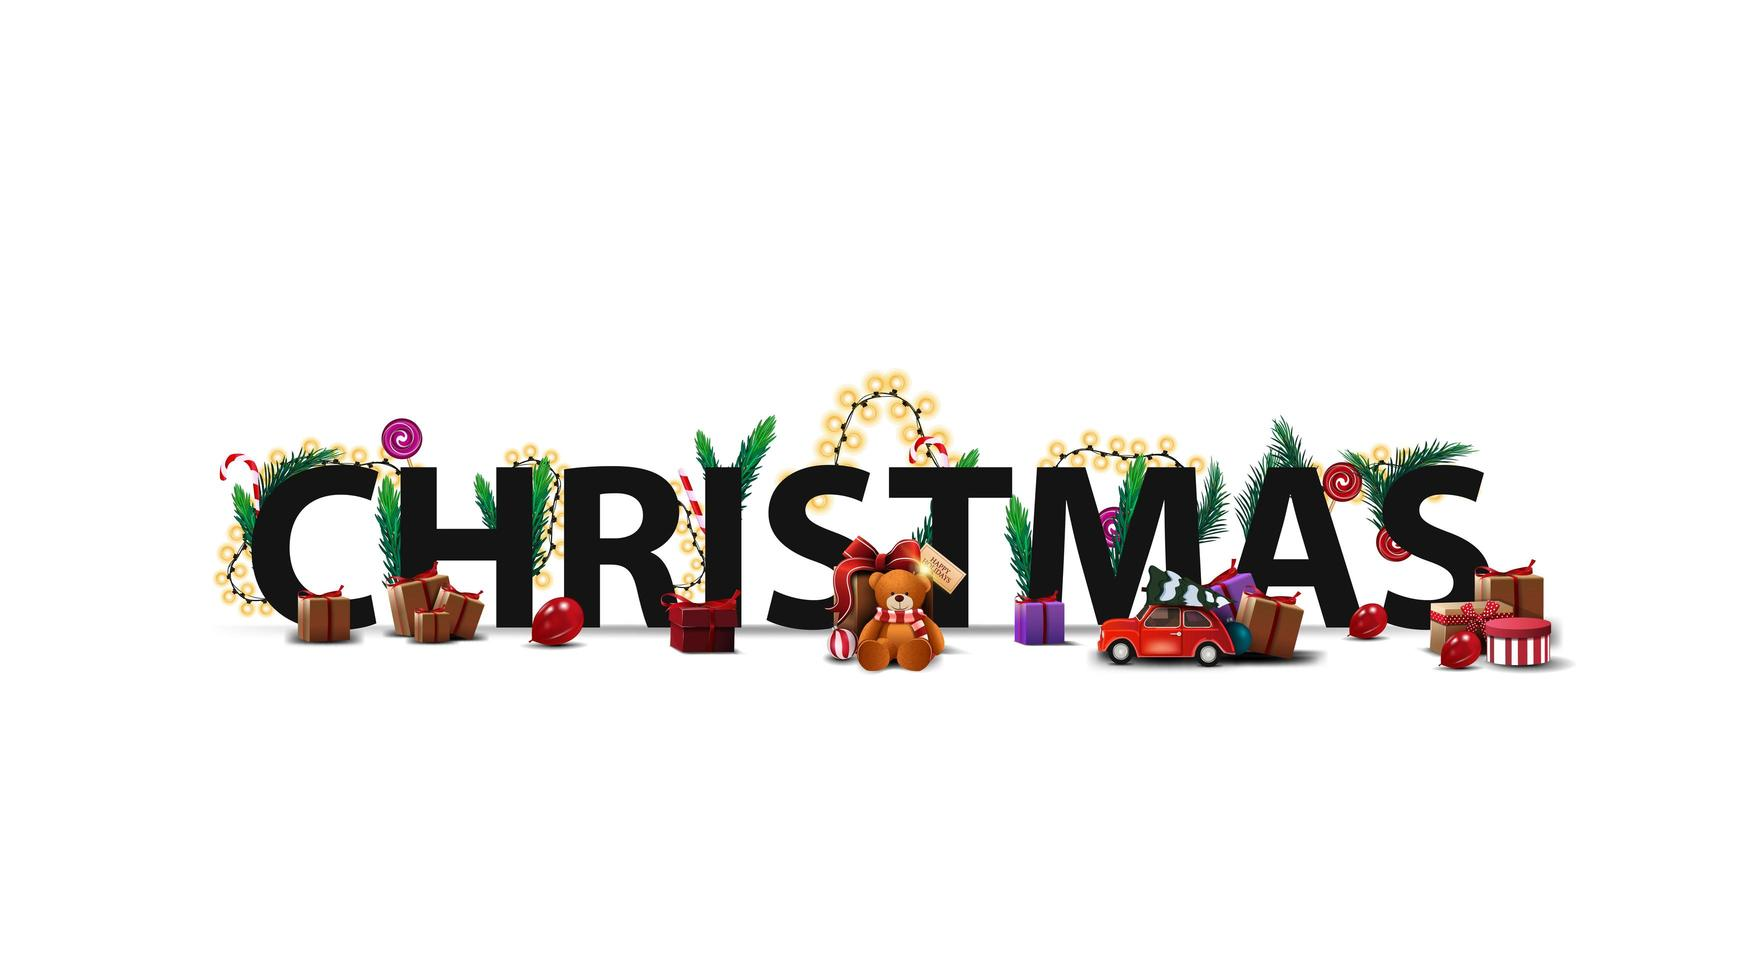 Christmas logo, sign, symbol. 3D title decorated with presents, Christmas tree branches, candies and garlands isolated on white vector